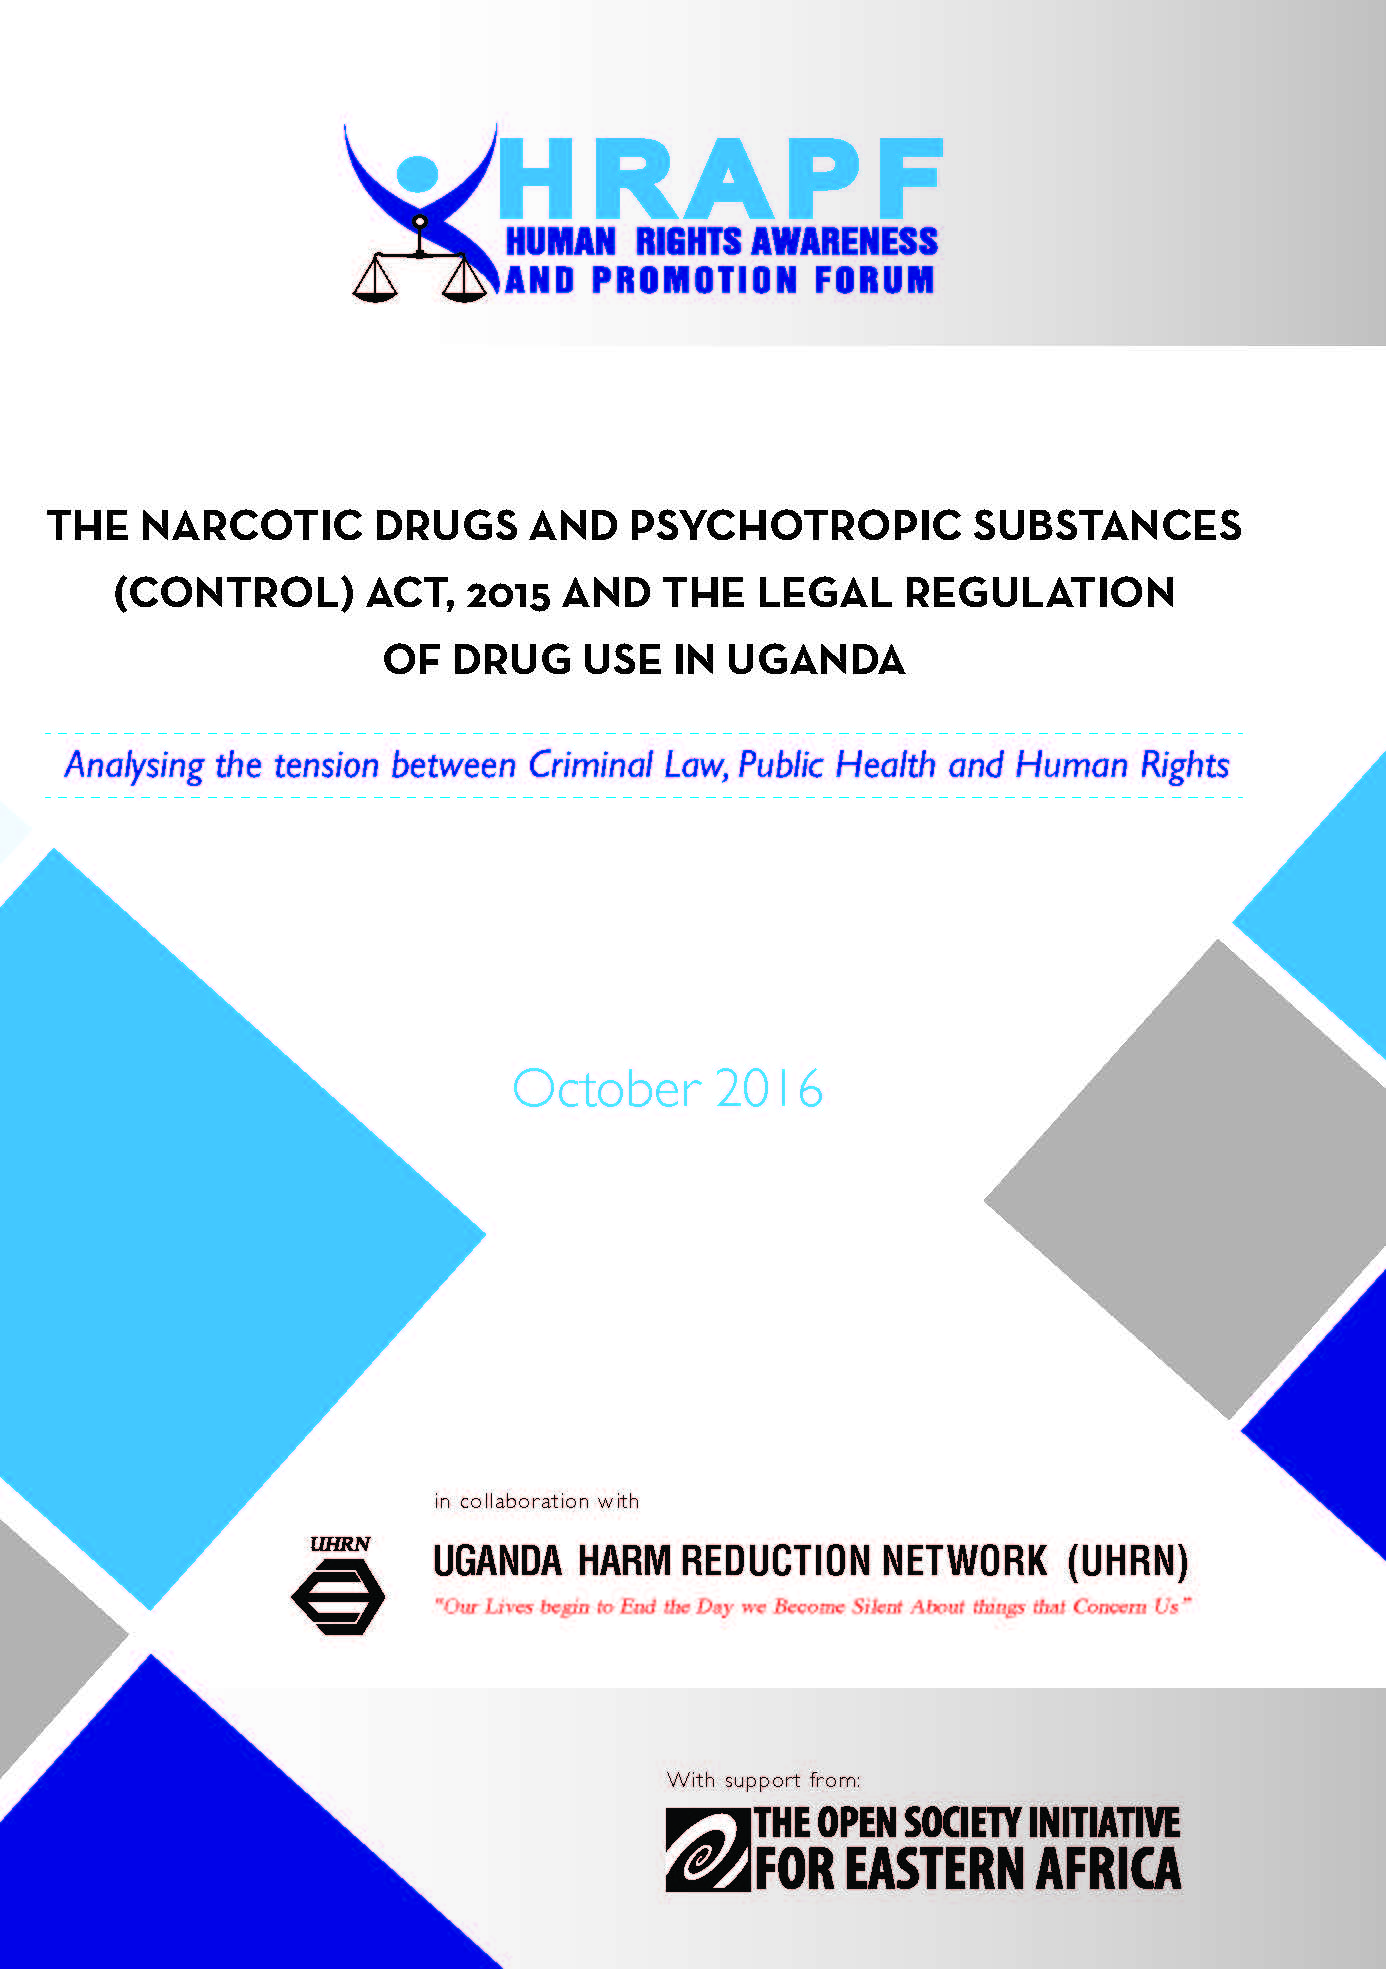 Final Hrapf Report of Legal Regulation of Drug use in Uganda 2016